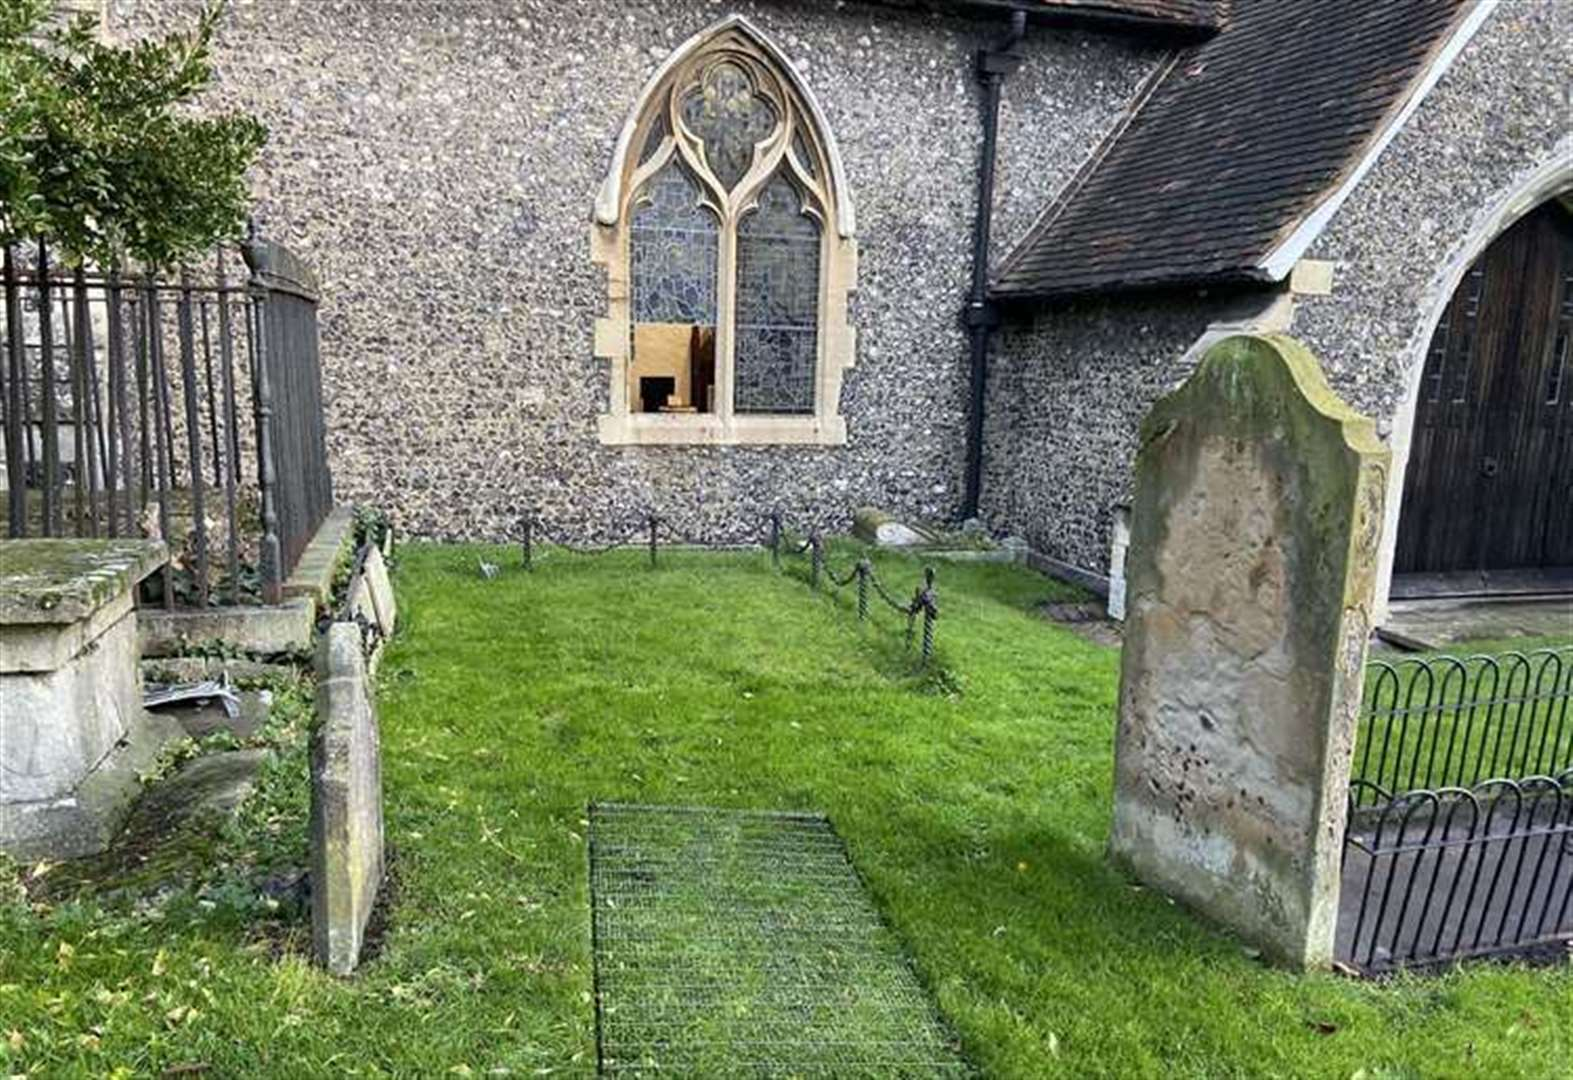 Church vandalised during break-in